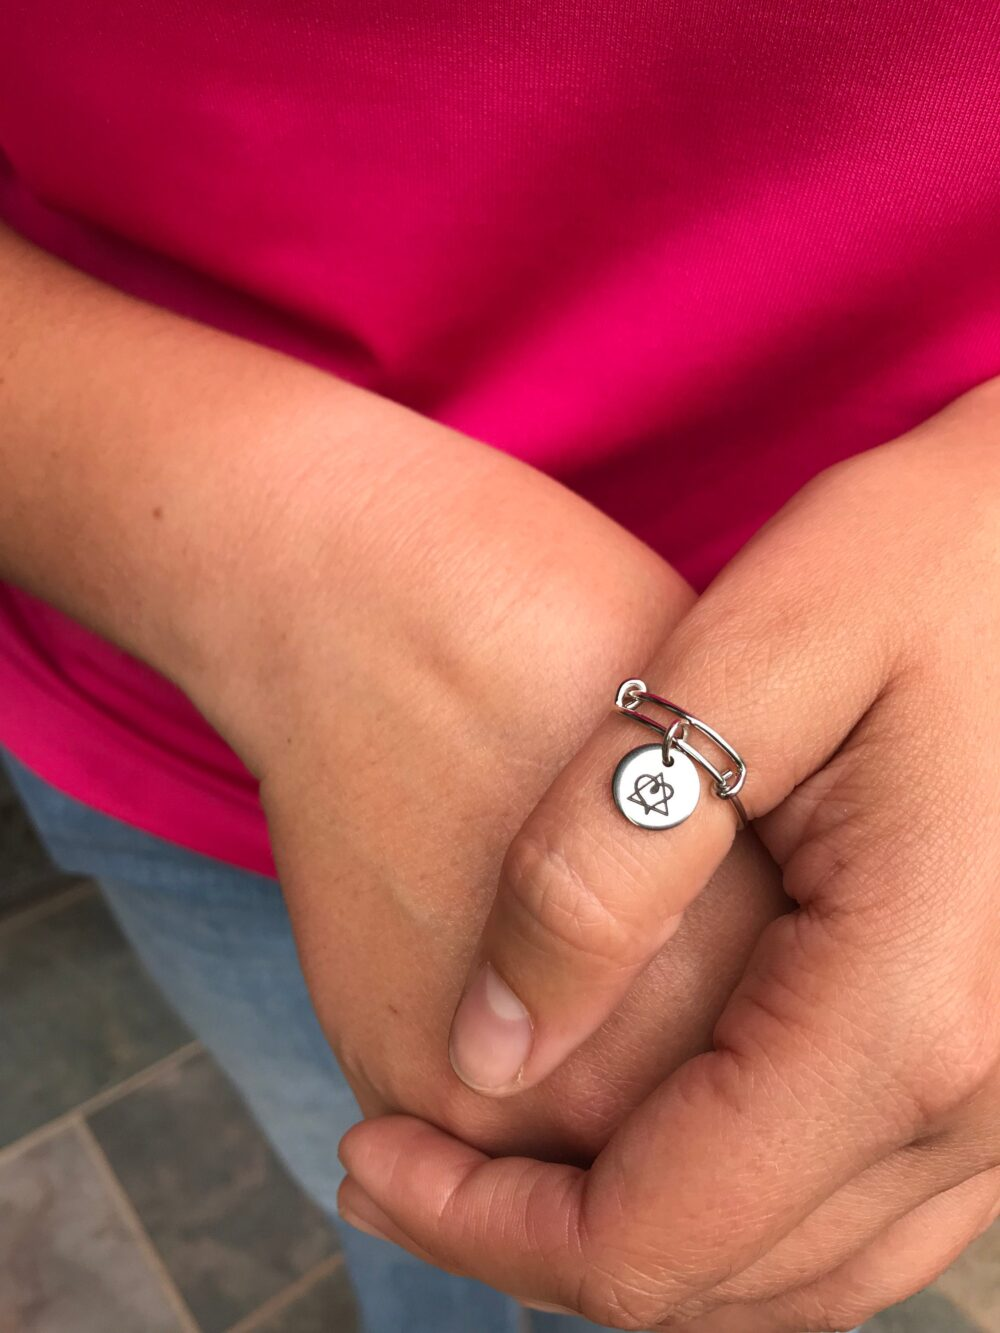 Adoption Symbol, Birthmother, Birth Mom, Mother, Baby Adoption, Thumb Ring, Silver Ring, Dainty, Jewelry, Keepsake, Gift For